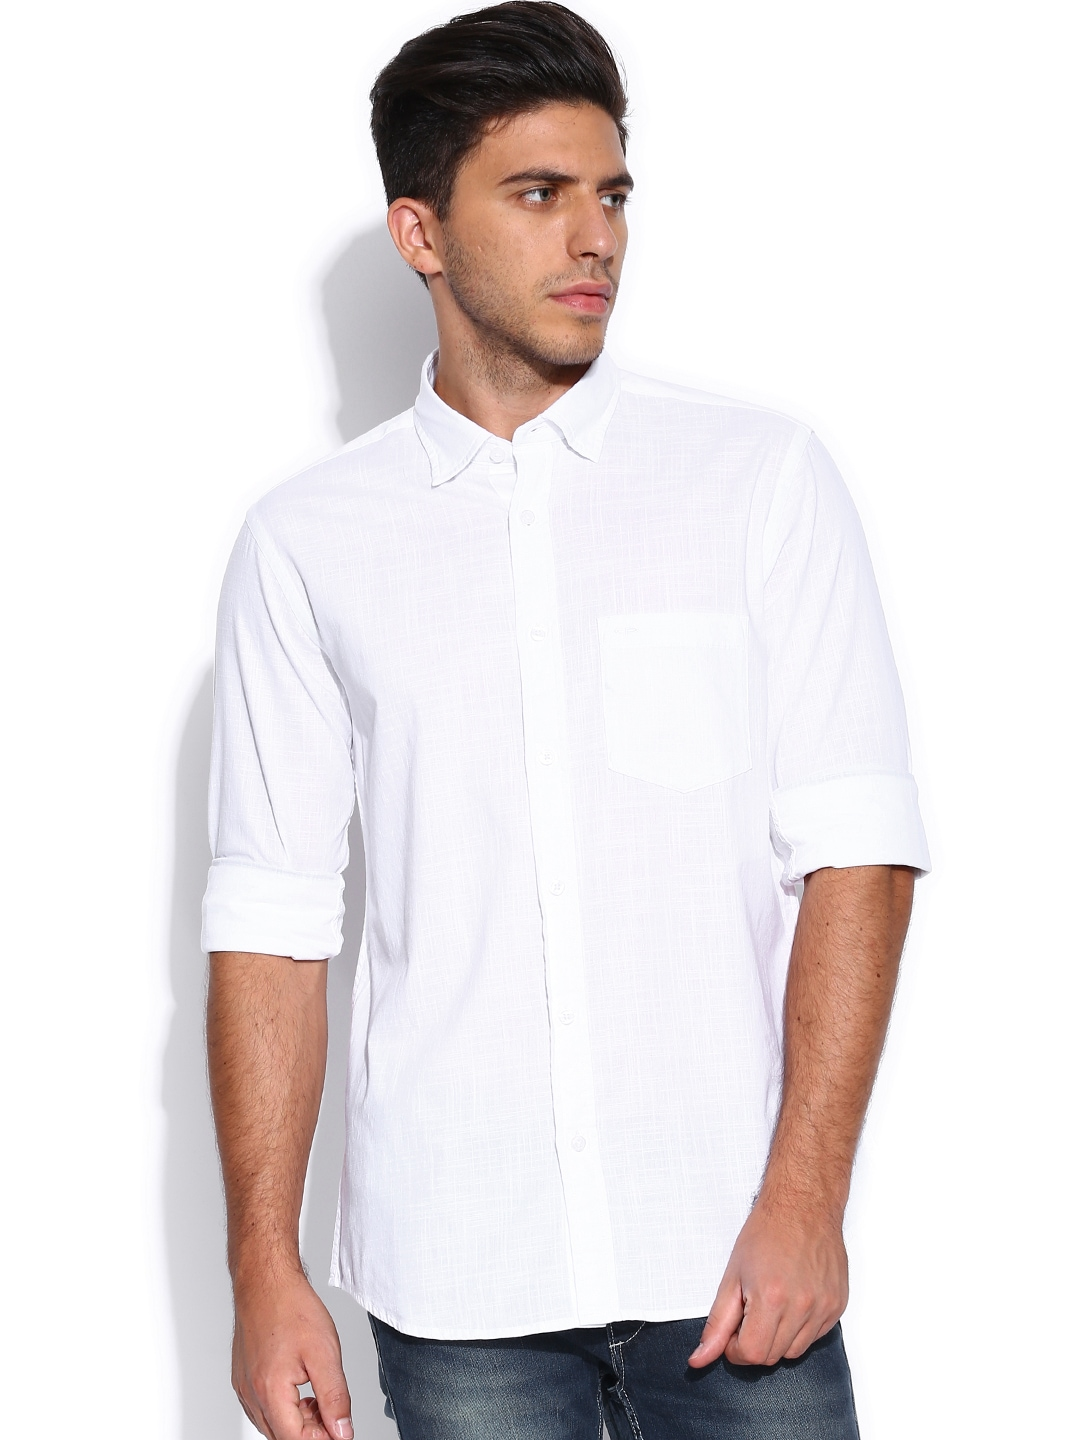 Myntra colorplus white tailored fit smart casual shirt for Tailor dress shirt cost